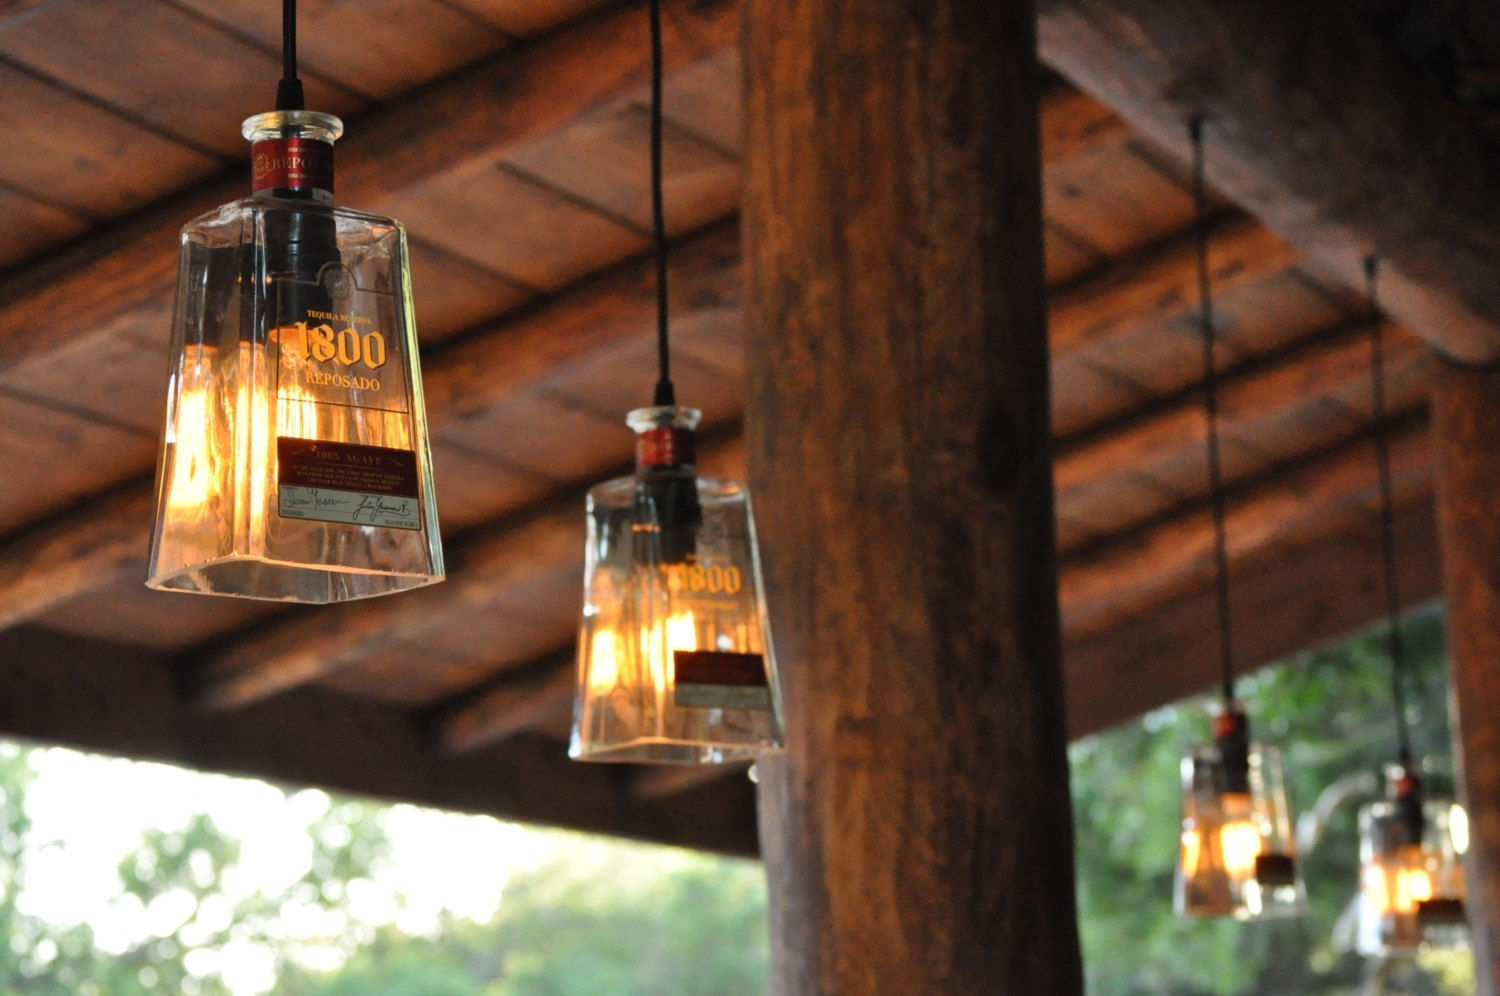 Fabulous Tequila Clear Glass Bottle Pendant Lamp In A Patio – Artenzo Pertaining To Outdoor Ceiling Lights For Patio (#4 of 15)